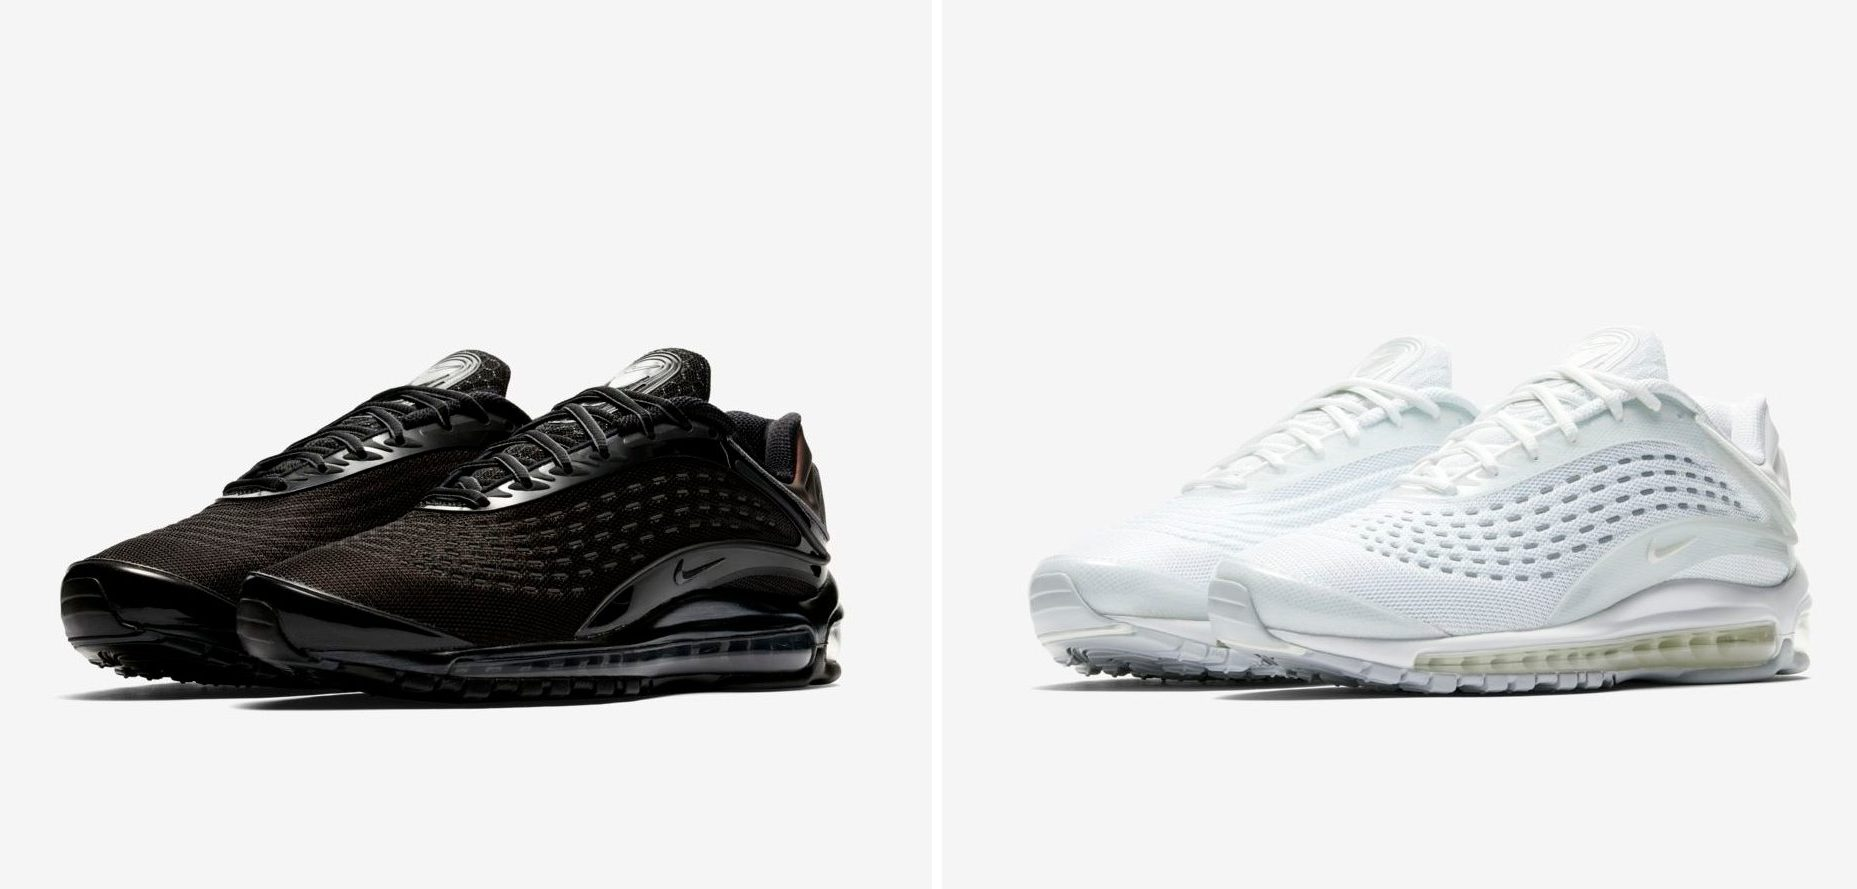 info for af672 ecebb ... Triple White and Black Editions of the Nike Air Max Deluxe. An absolute  must-cop. By Jacob Davey. September 12th 2018. Images via Nike